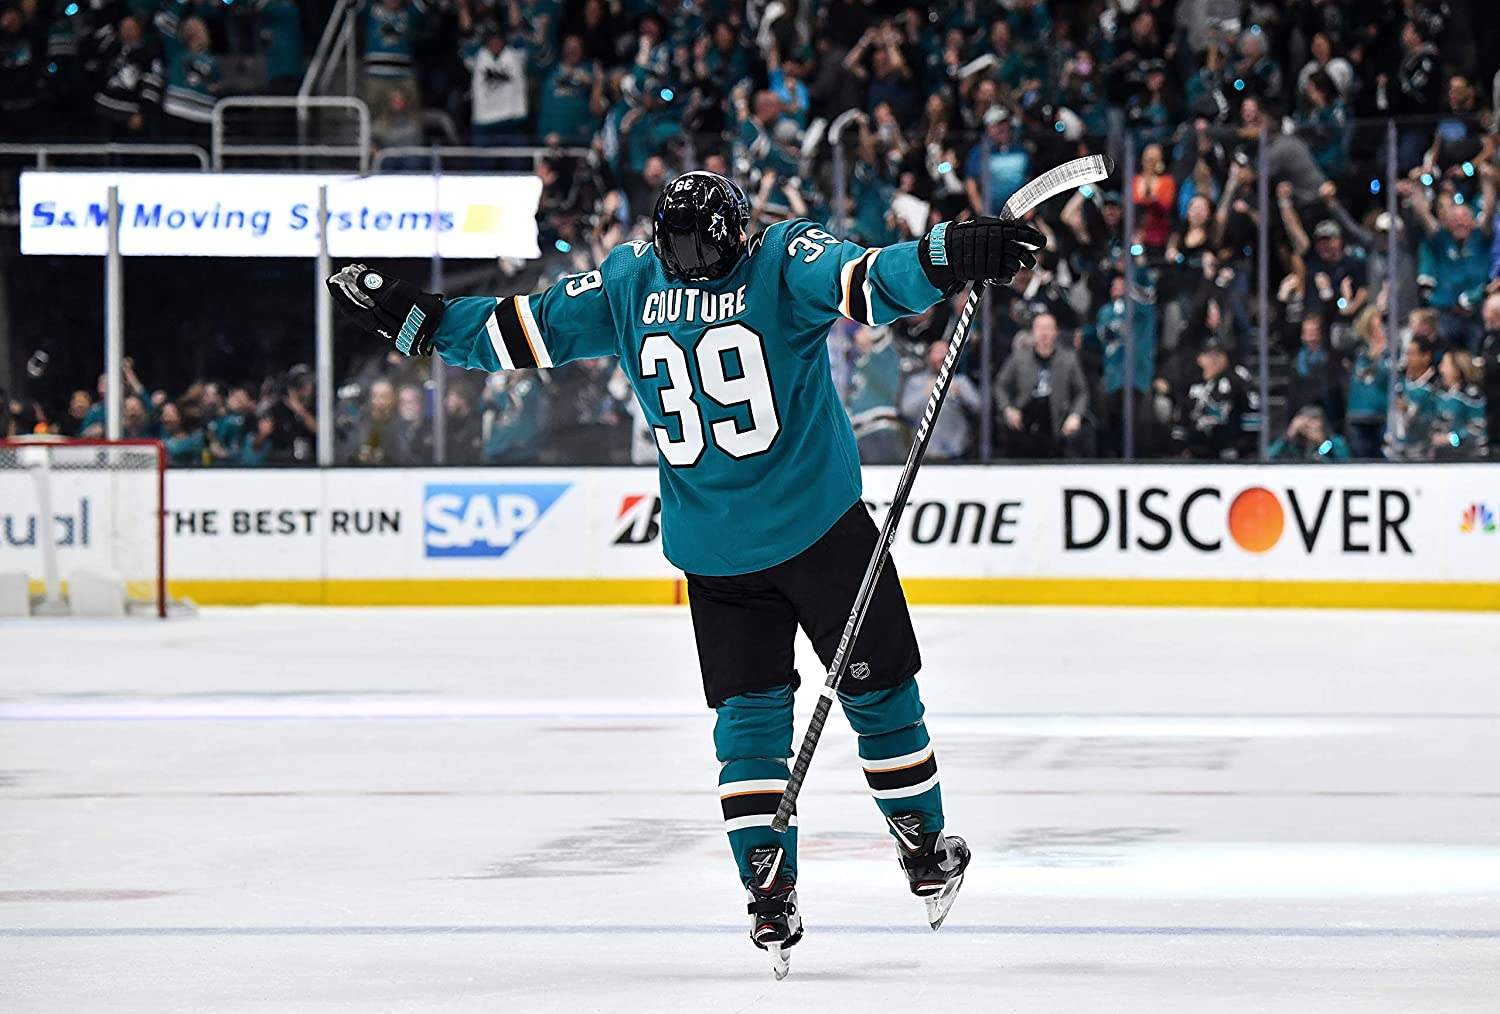 Logan Couture San Jose Sharks Poster Print, Hockey Player, ArtWork, Real Player, Logan Couture Decor, Canvas Art, Posters for Wall SIZE 24 x 32 Inches